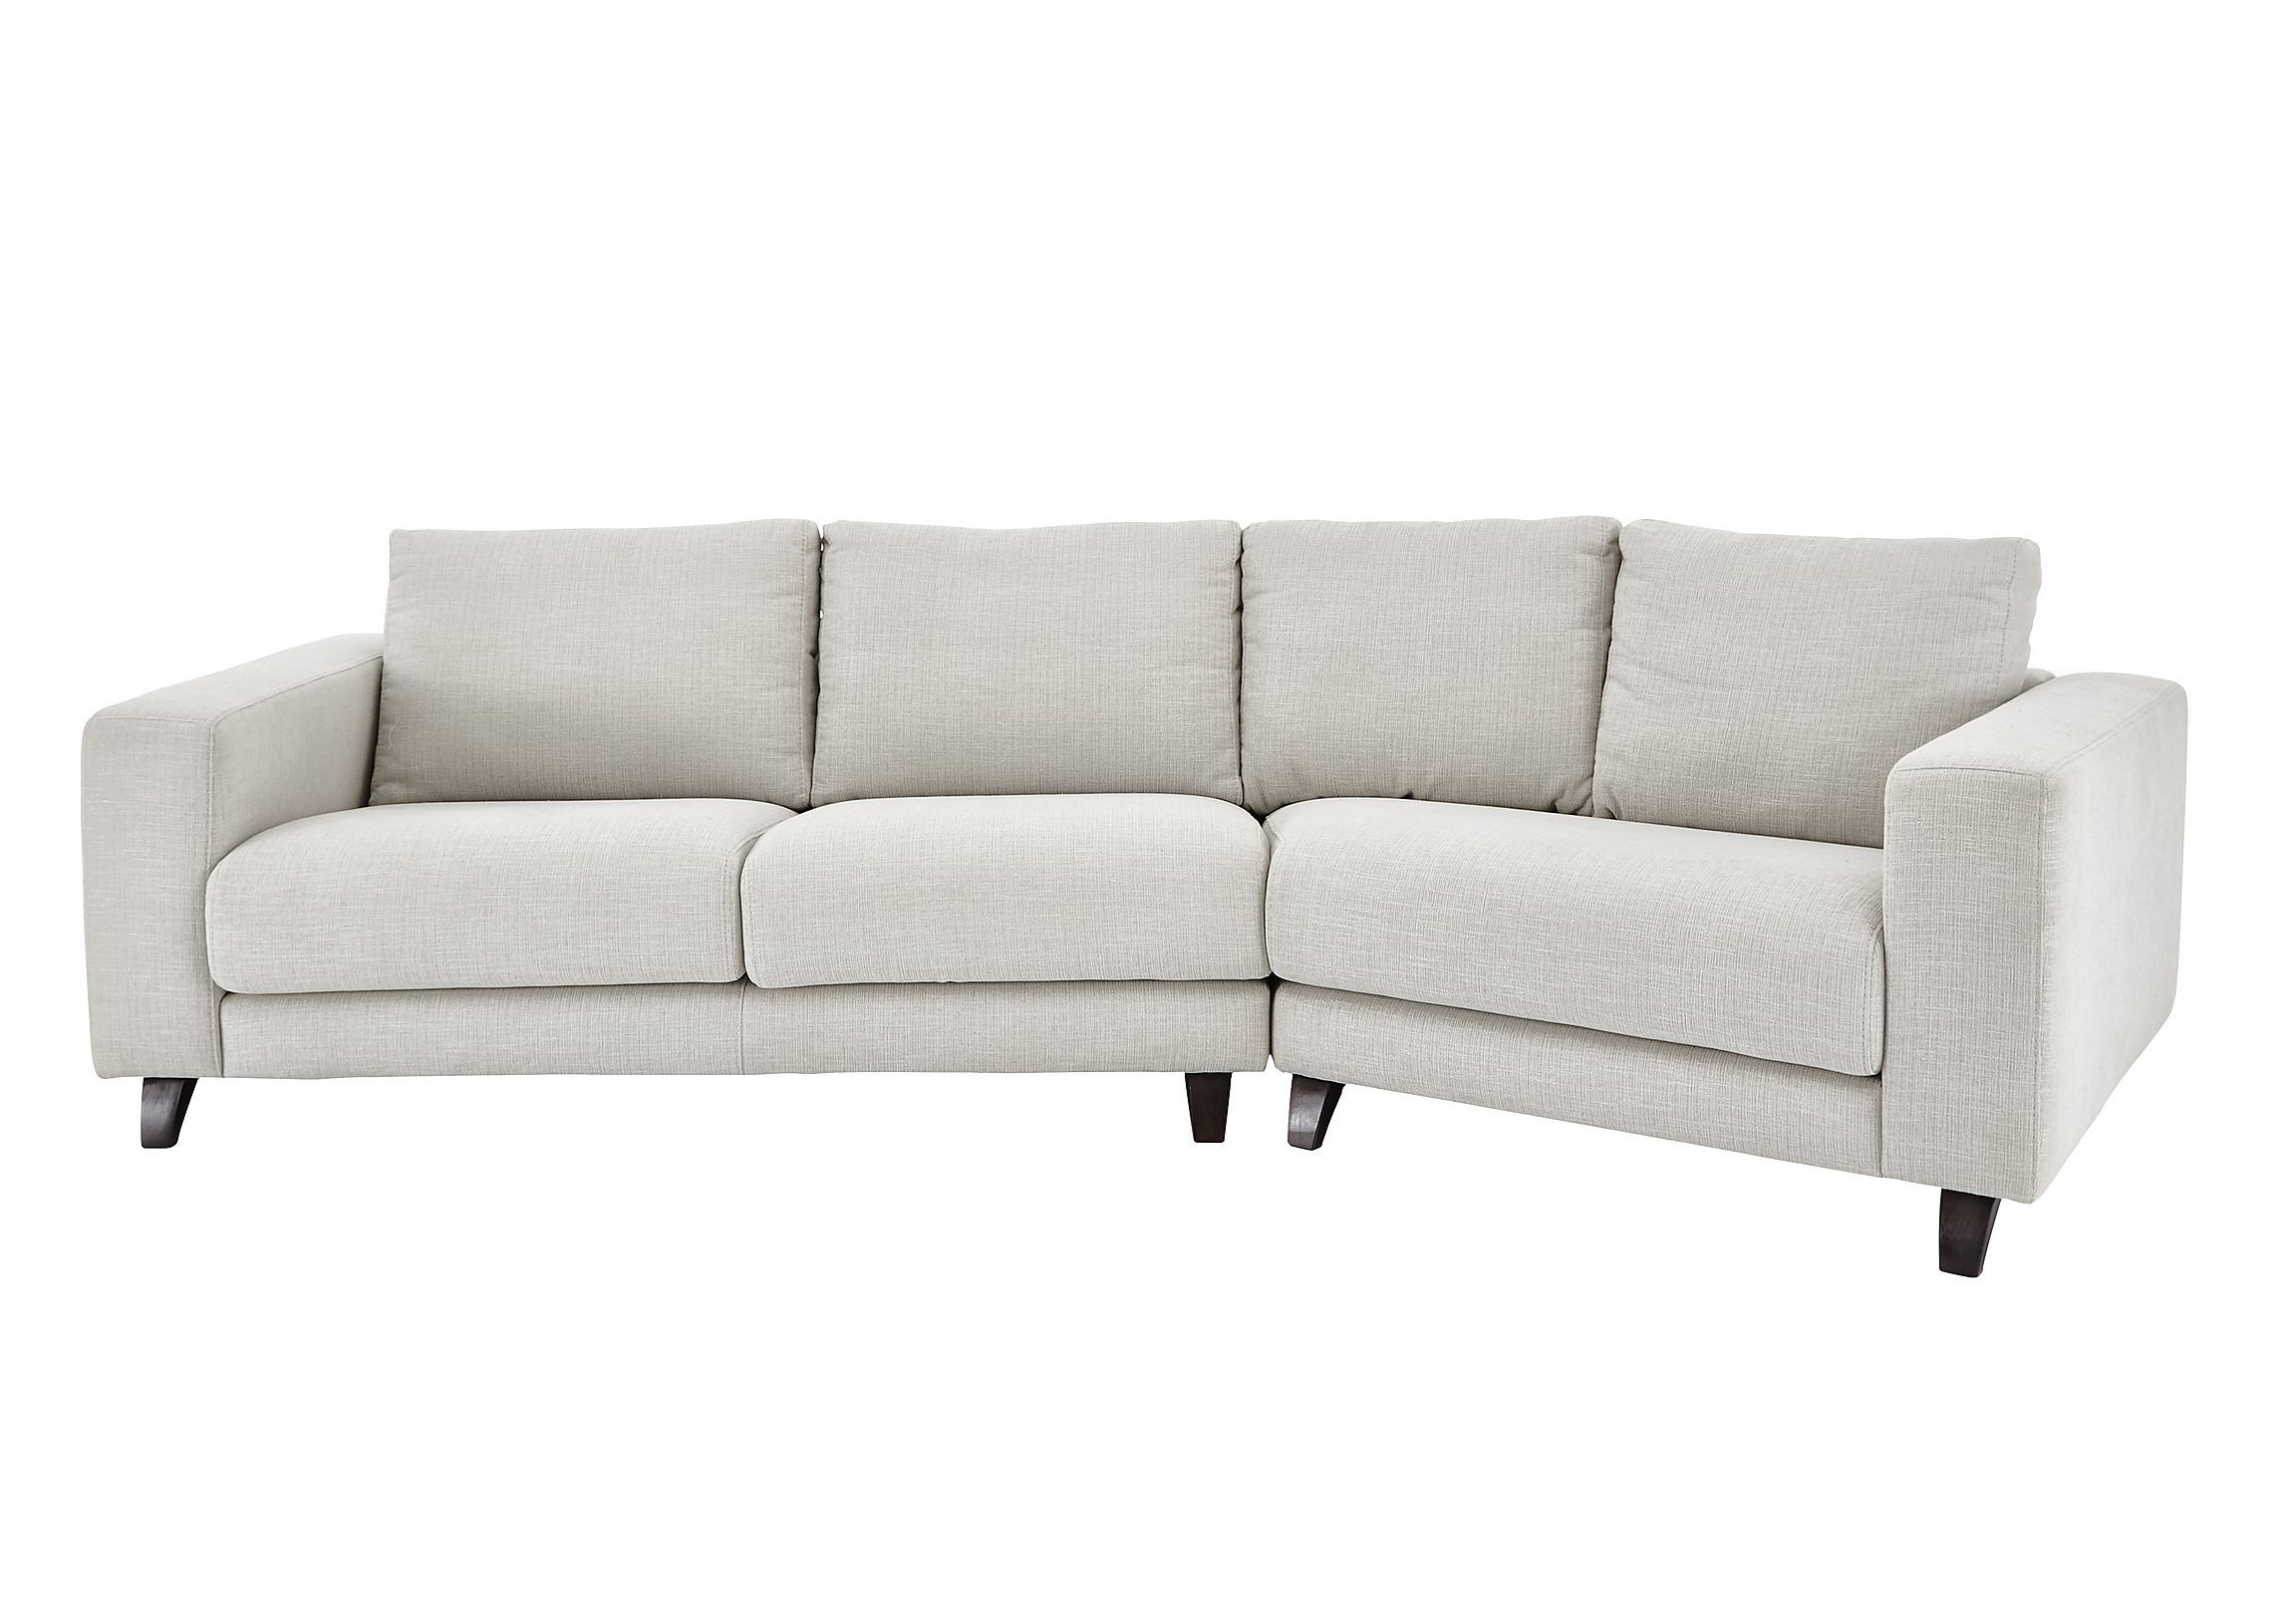 Angled Sectional Sofa On Credit Couch Wayfair Thesofa